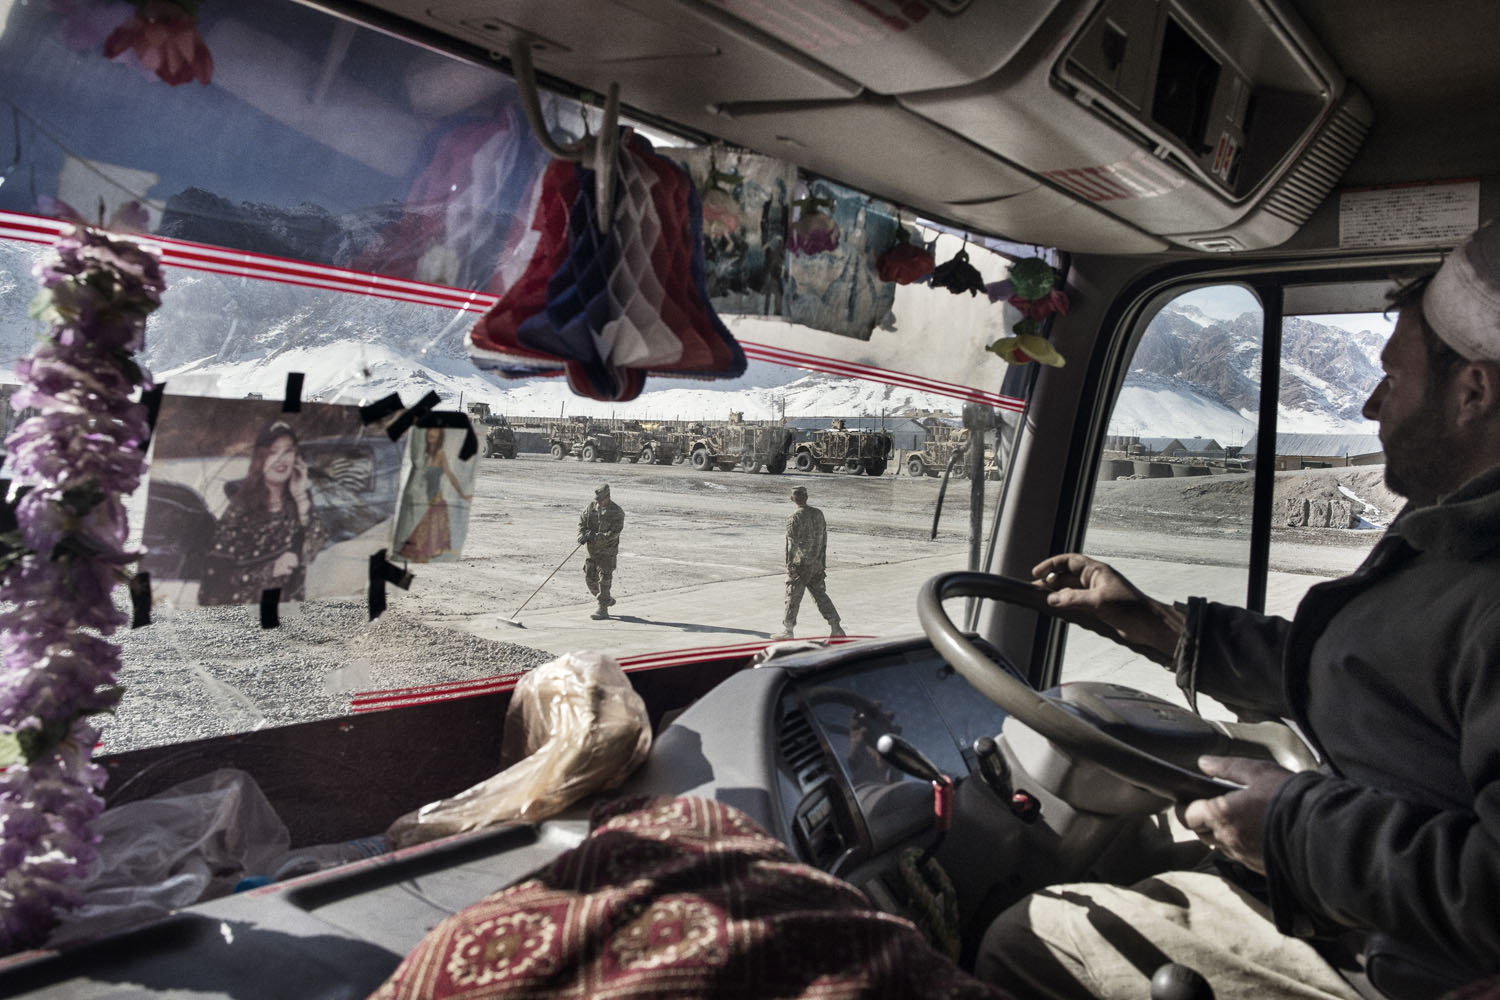 Ali Khan, a Pashtun Afghan from Gardez, drives his truck on Forward Operating Base Altimur after paratroopers from 4-319 Airborne Field Artillery Battalion loaded it up with equipment.